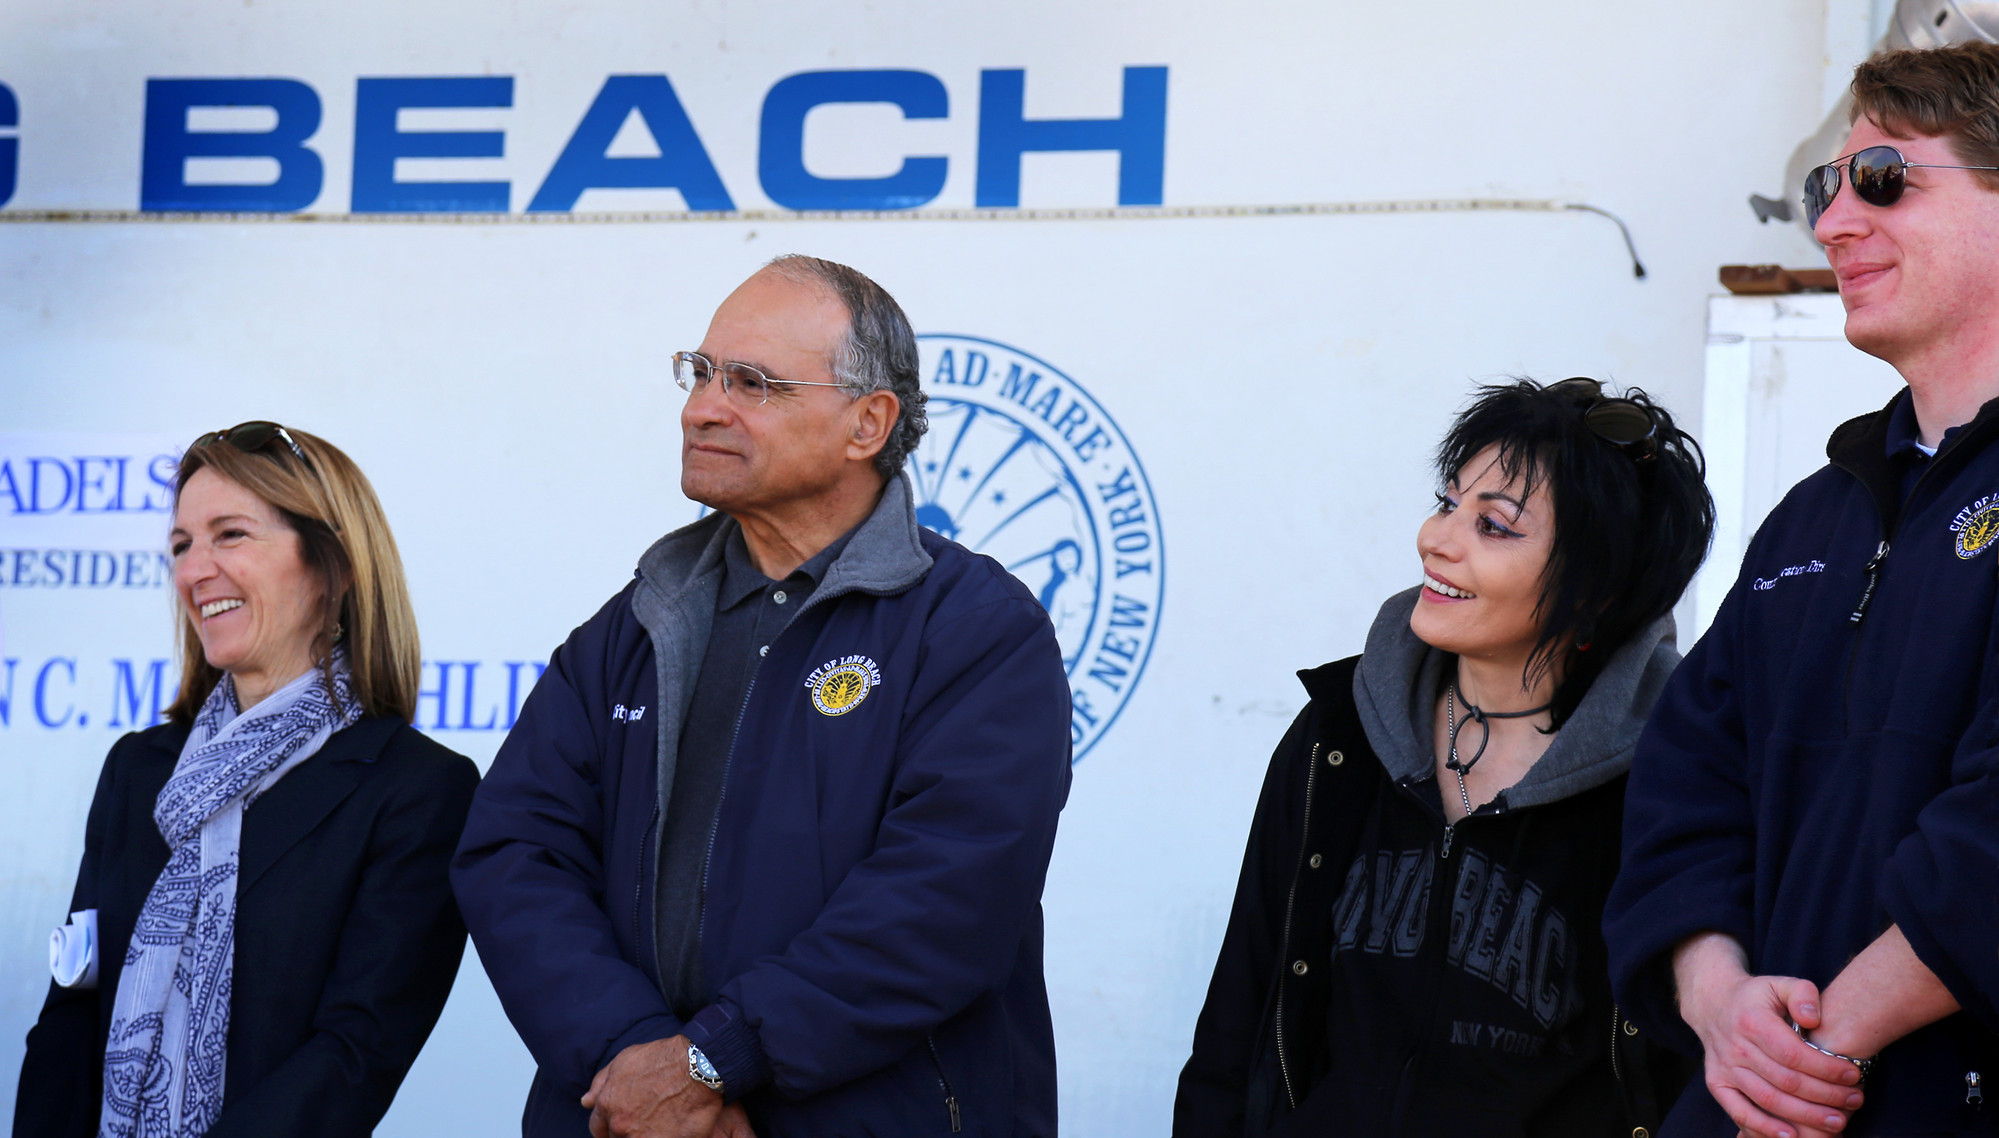 Council Vice President Fran Adelson, left, Councilman Len Torres, Joan Jett and Gordon Tepper, the city's Director of Communications.